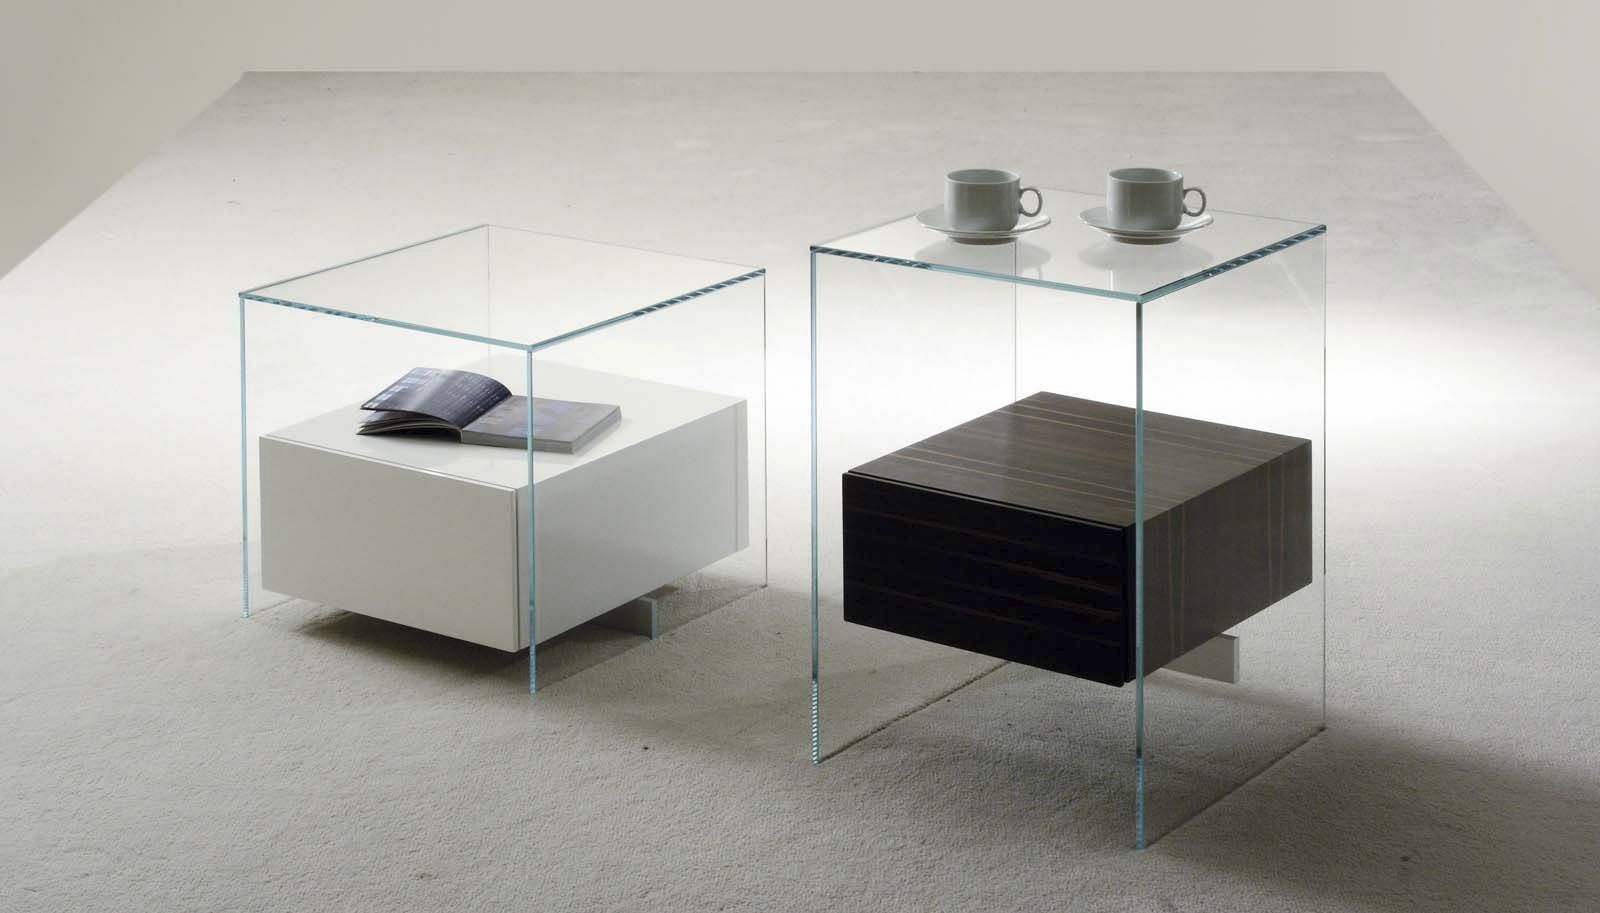 Table de chevet design en verre design en image for Table basse moderne bois